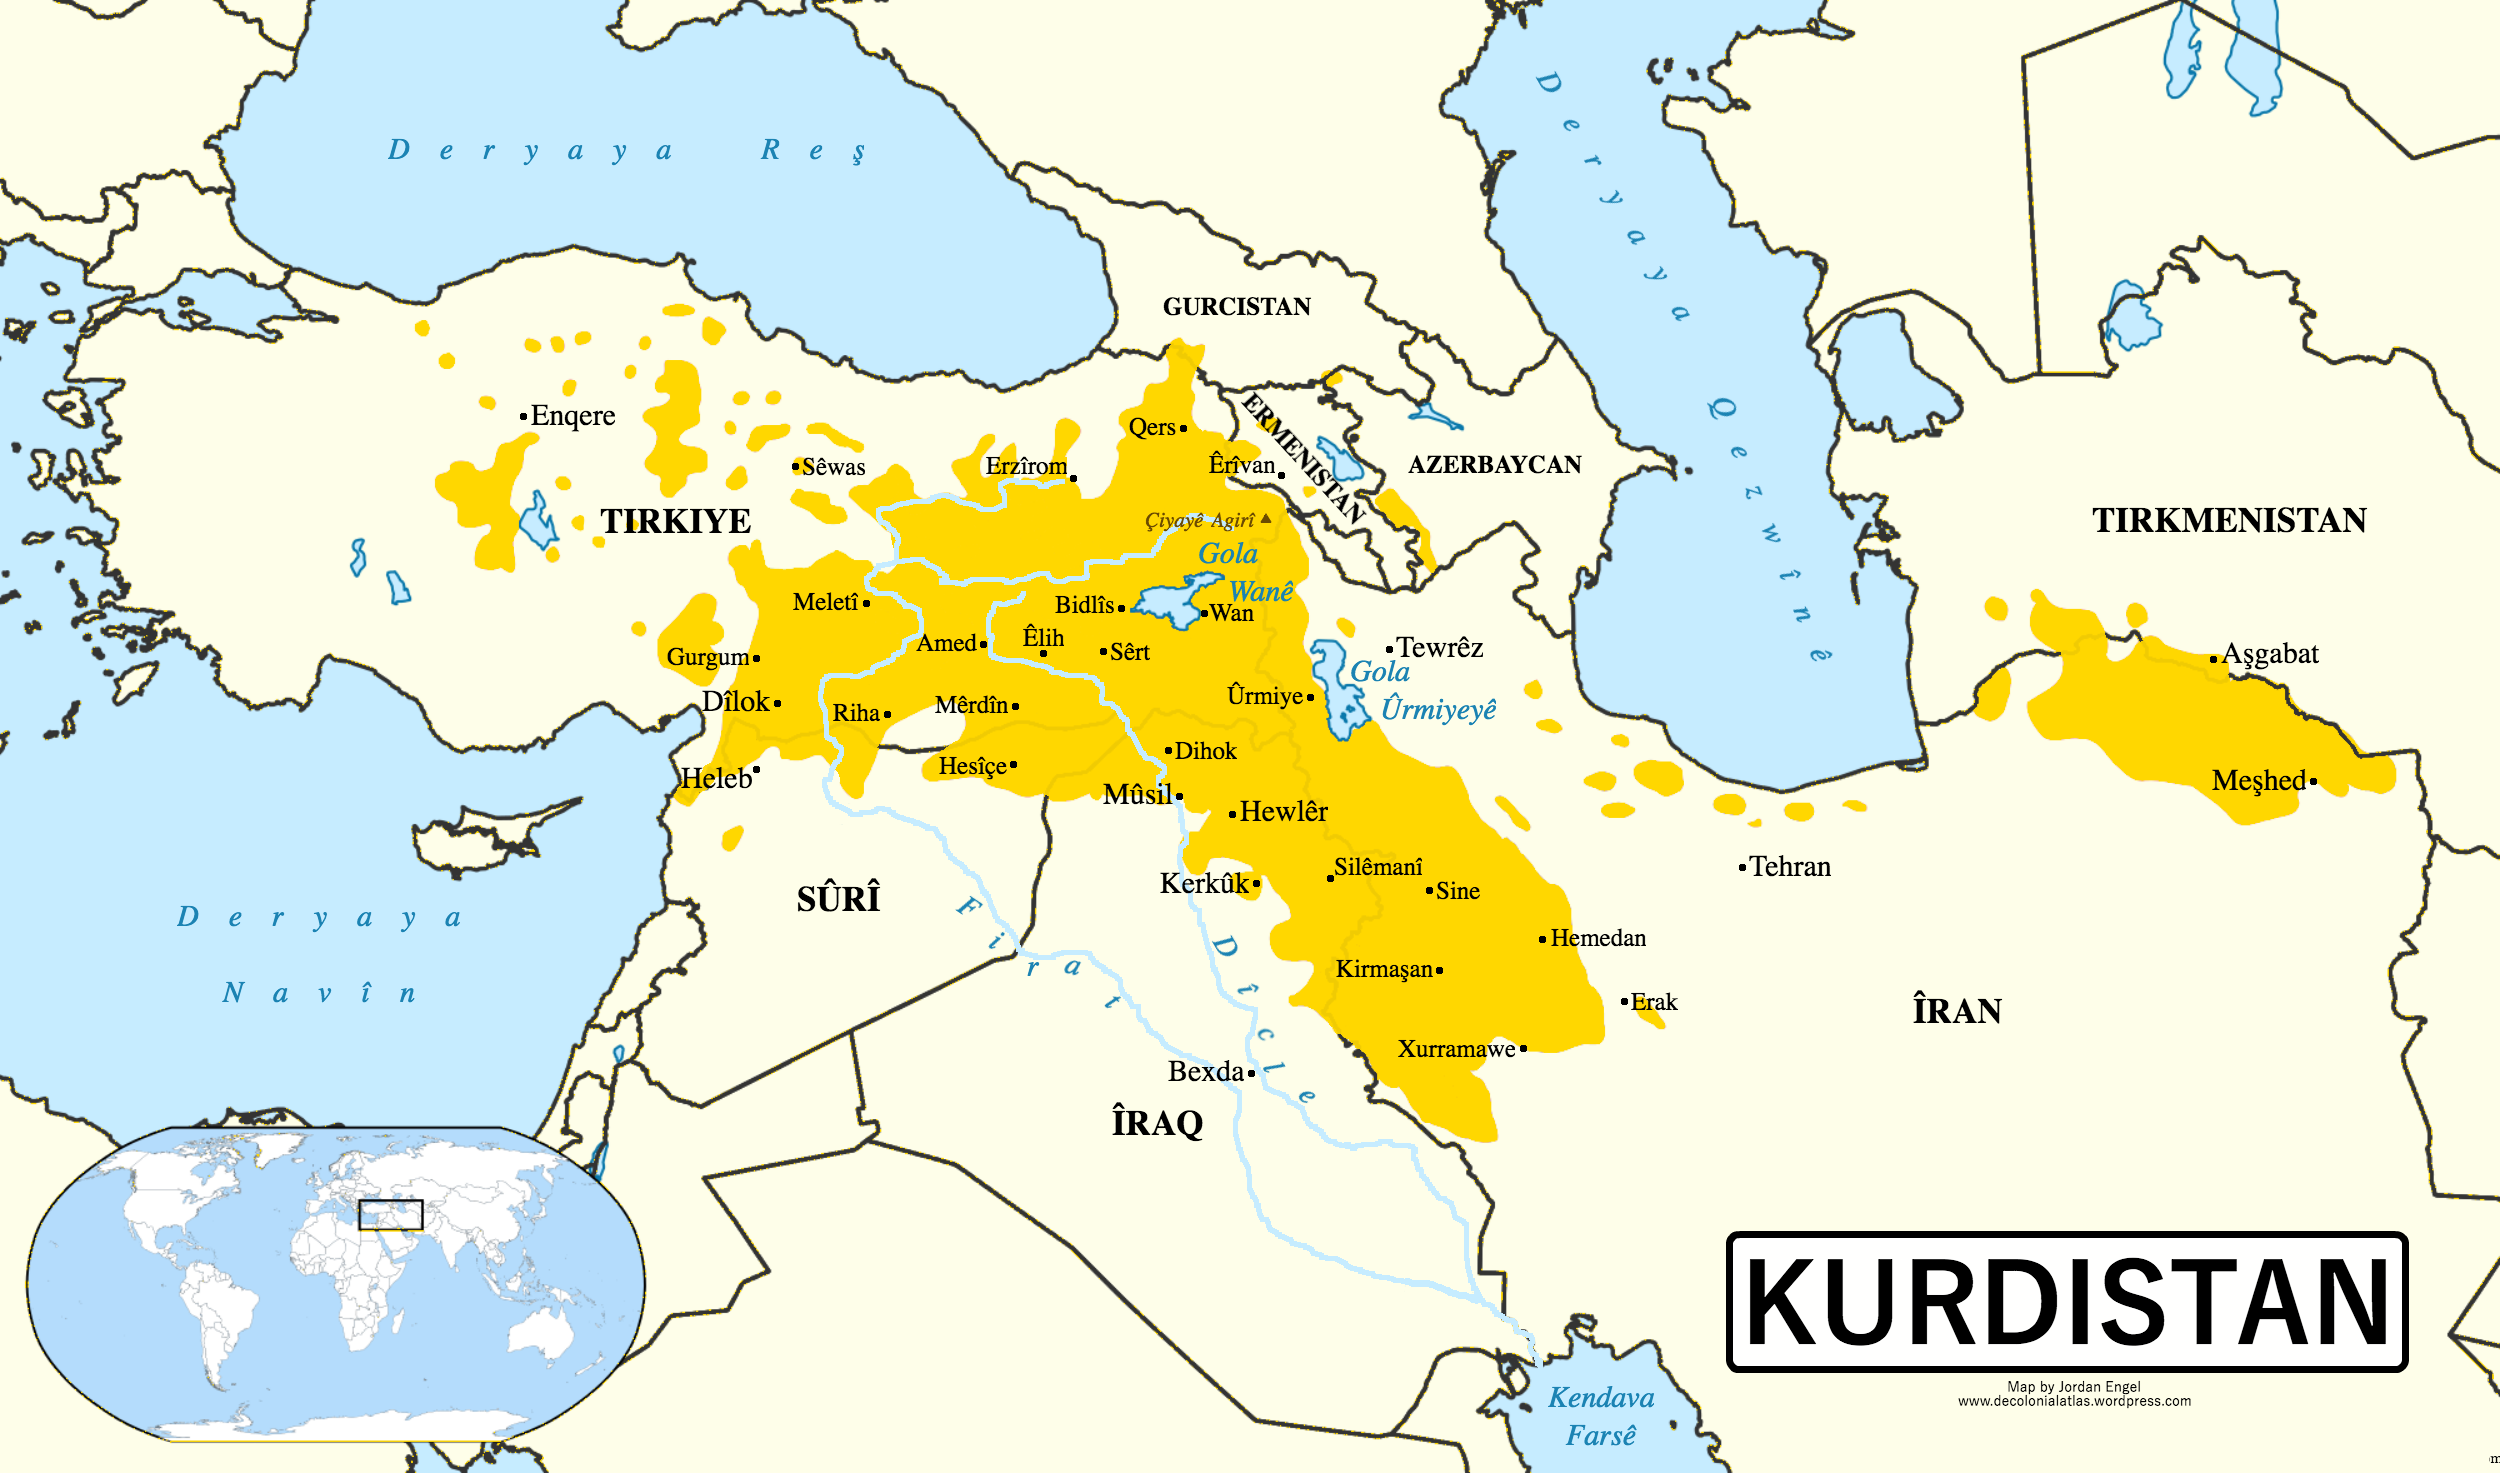 Background: The Kurdish freedom struggle | on most popular television show by state, iq by state, most popular vehicles by state, nicest people by state,